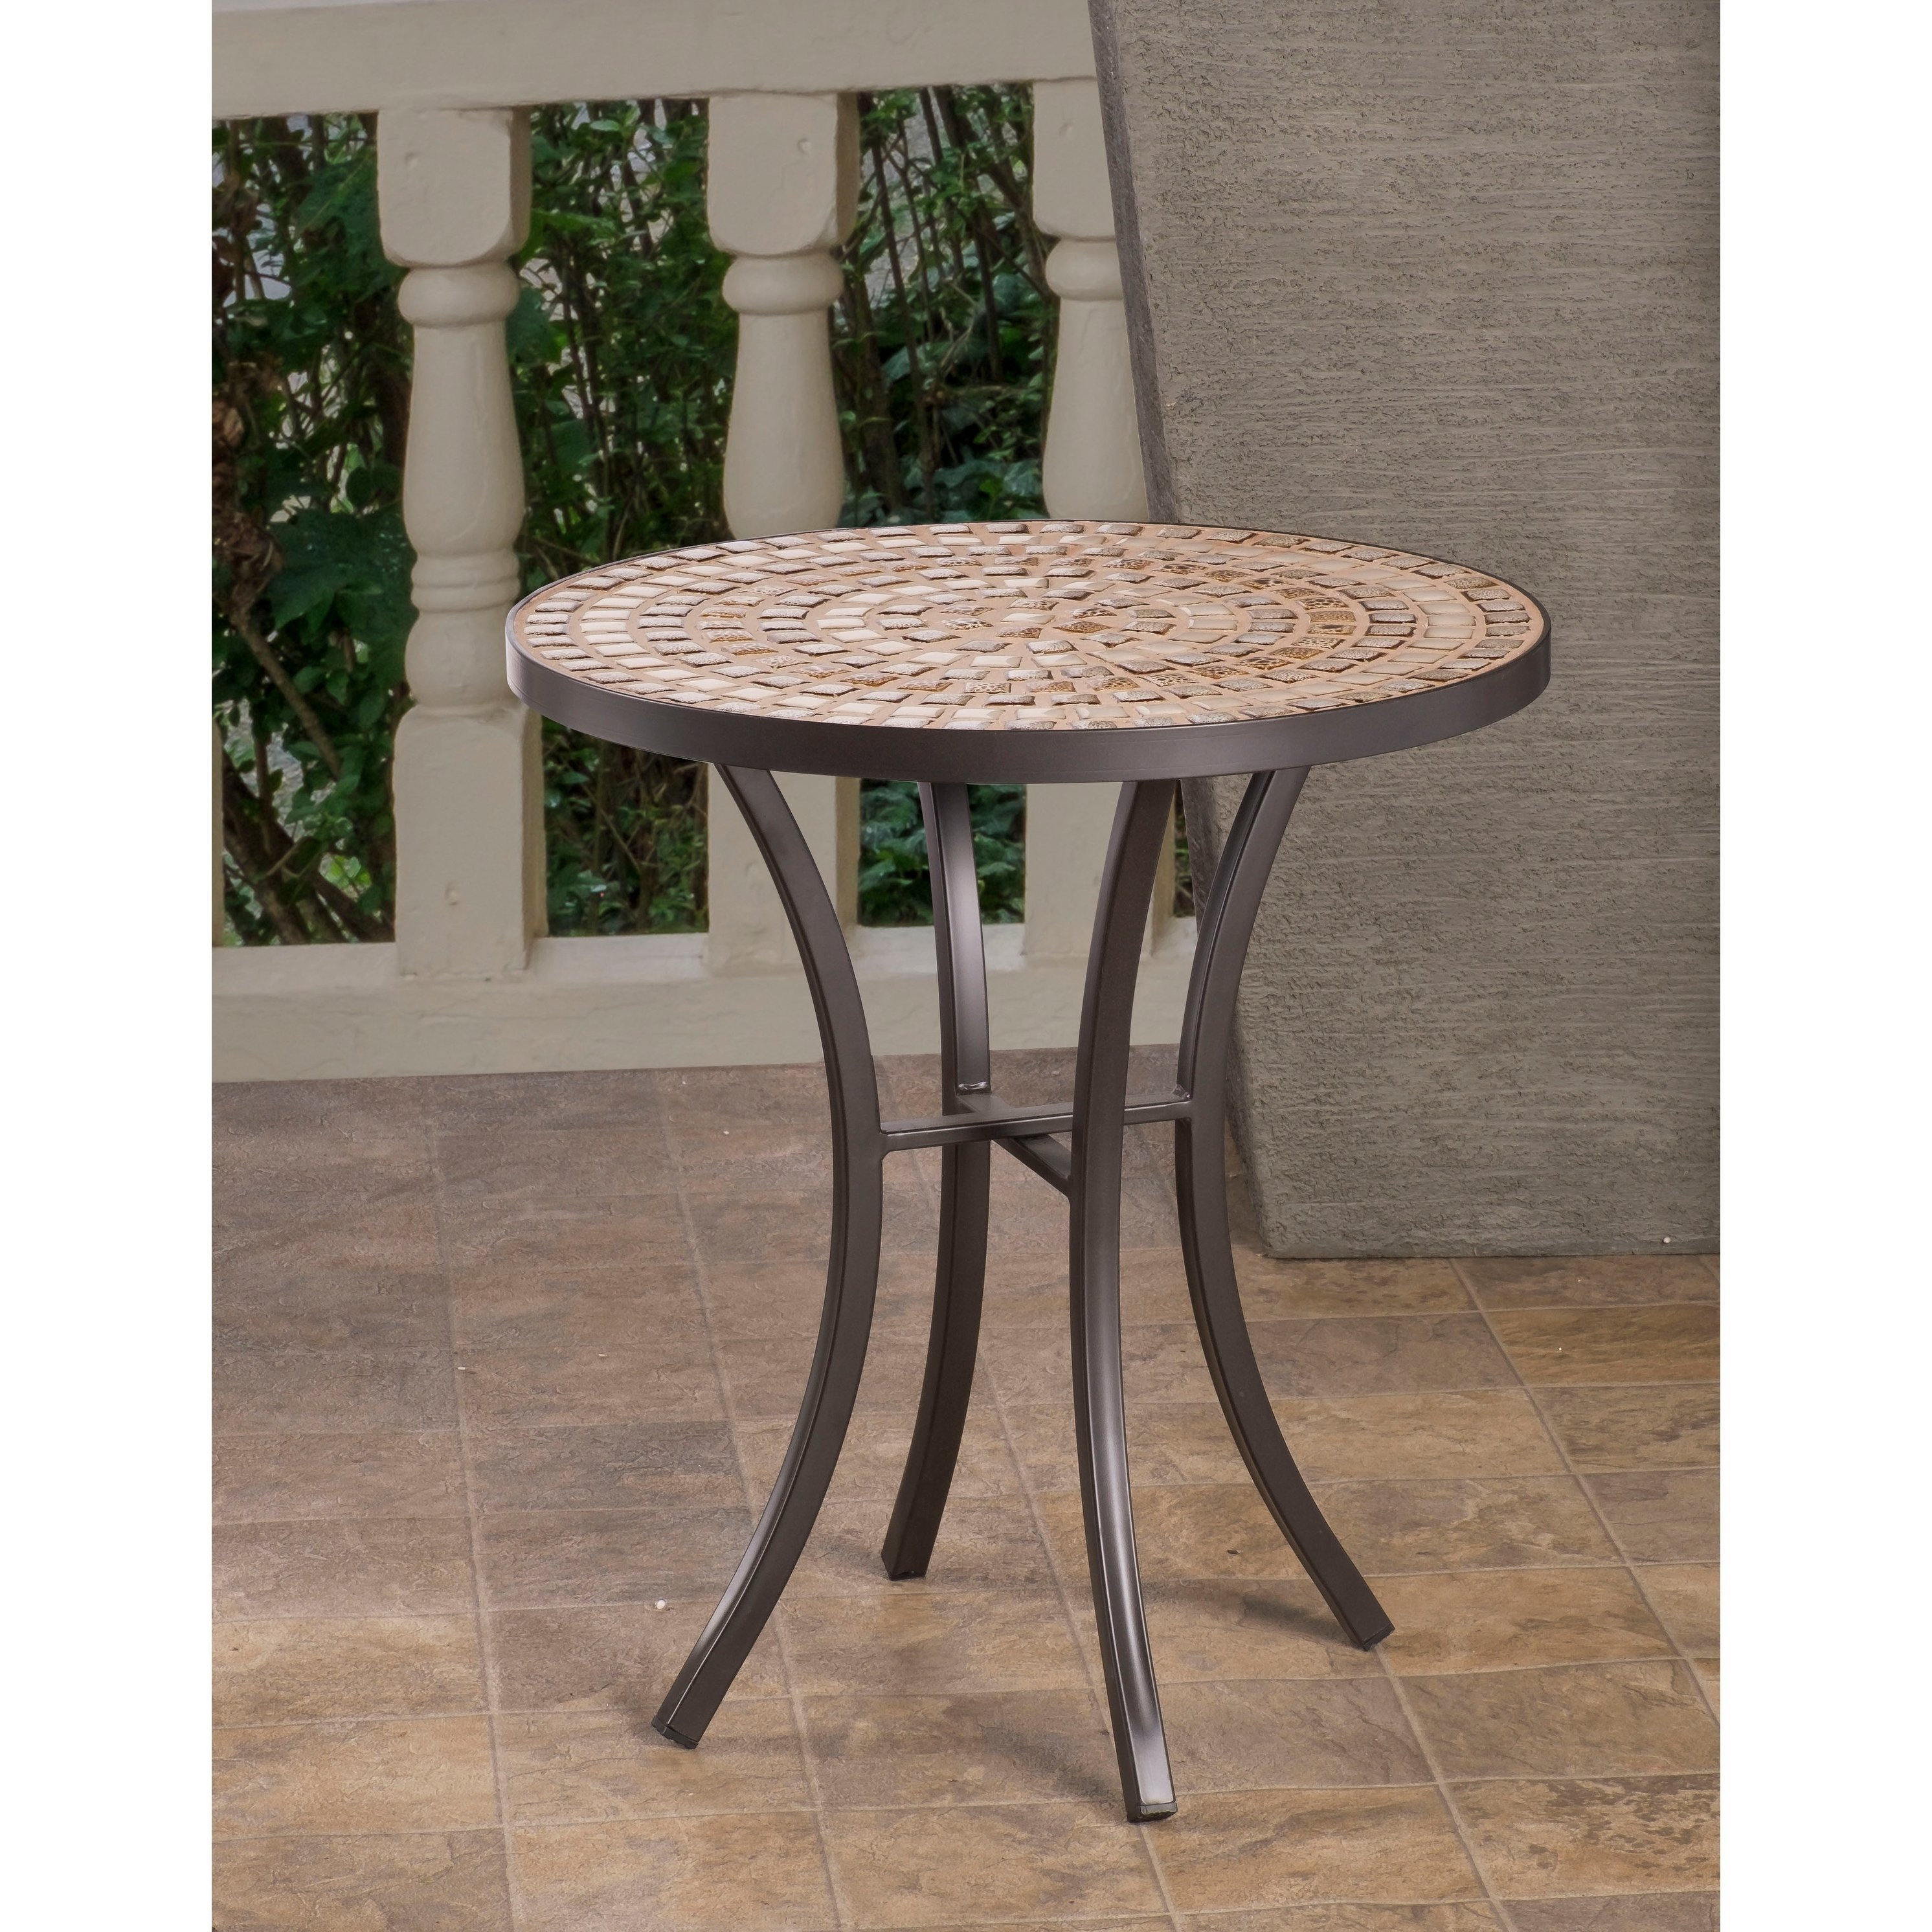 boracay beige ceramic and wrought iron inch round mosaic outdoor side table top furniture target console linen runner large floor mirror ers square with storage meyda tiffany lamp